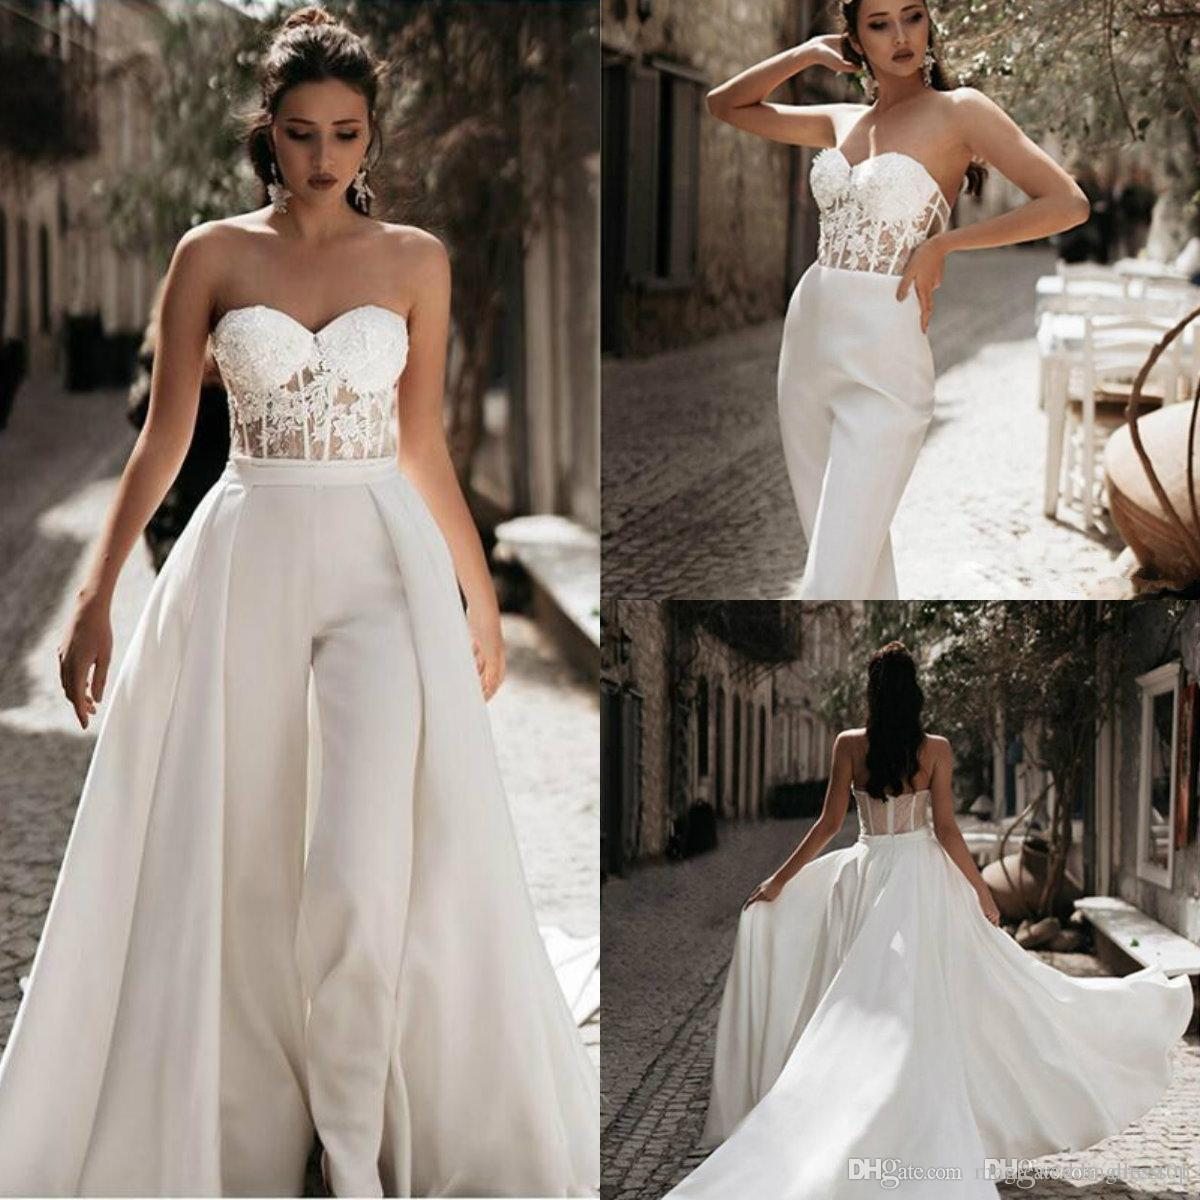 2020 Modest Jumpsuit Wedding Dresses with Detachable Train Sweetheart Pants Bridal Gowns Satin Lace Appliques Beach Wedding Dress